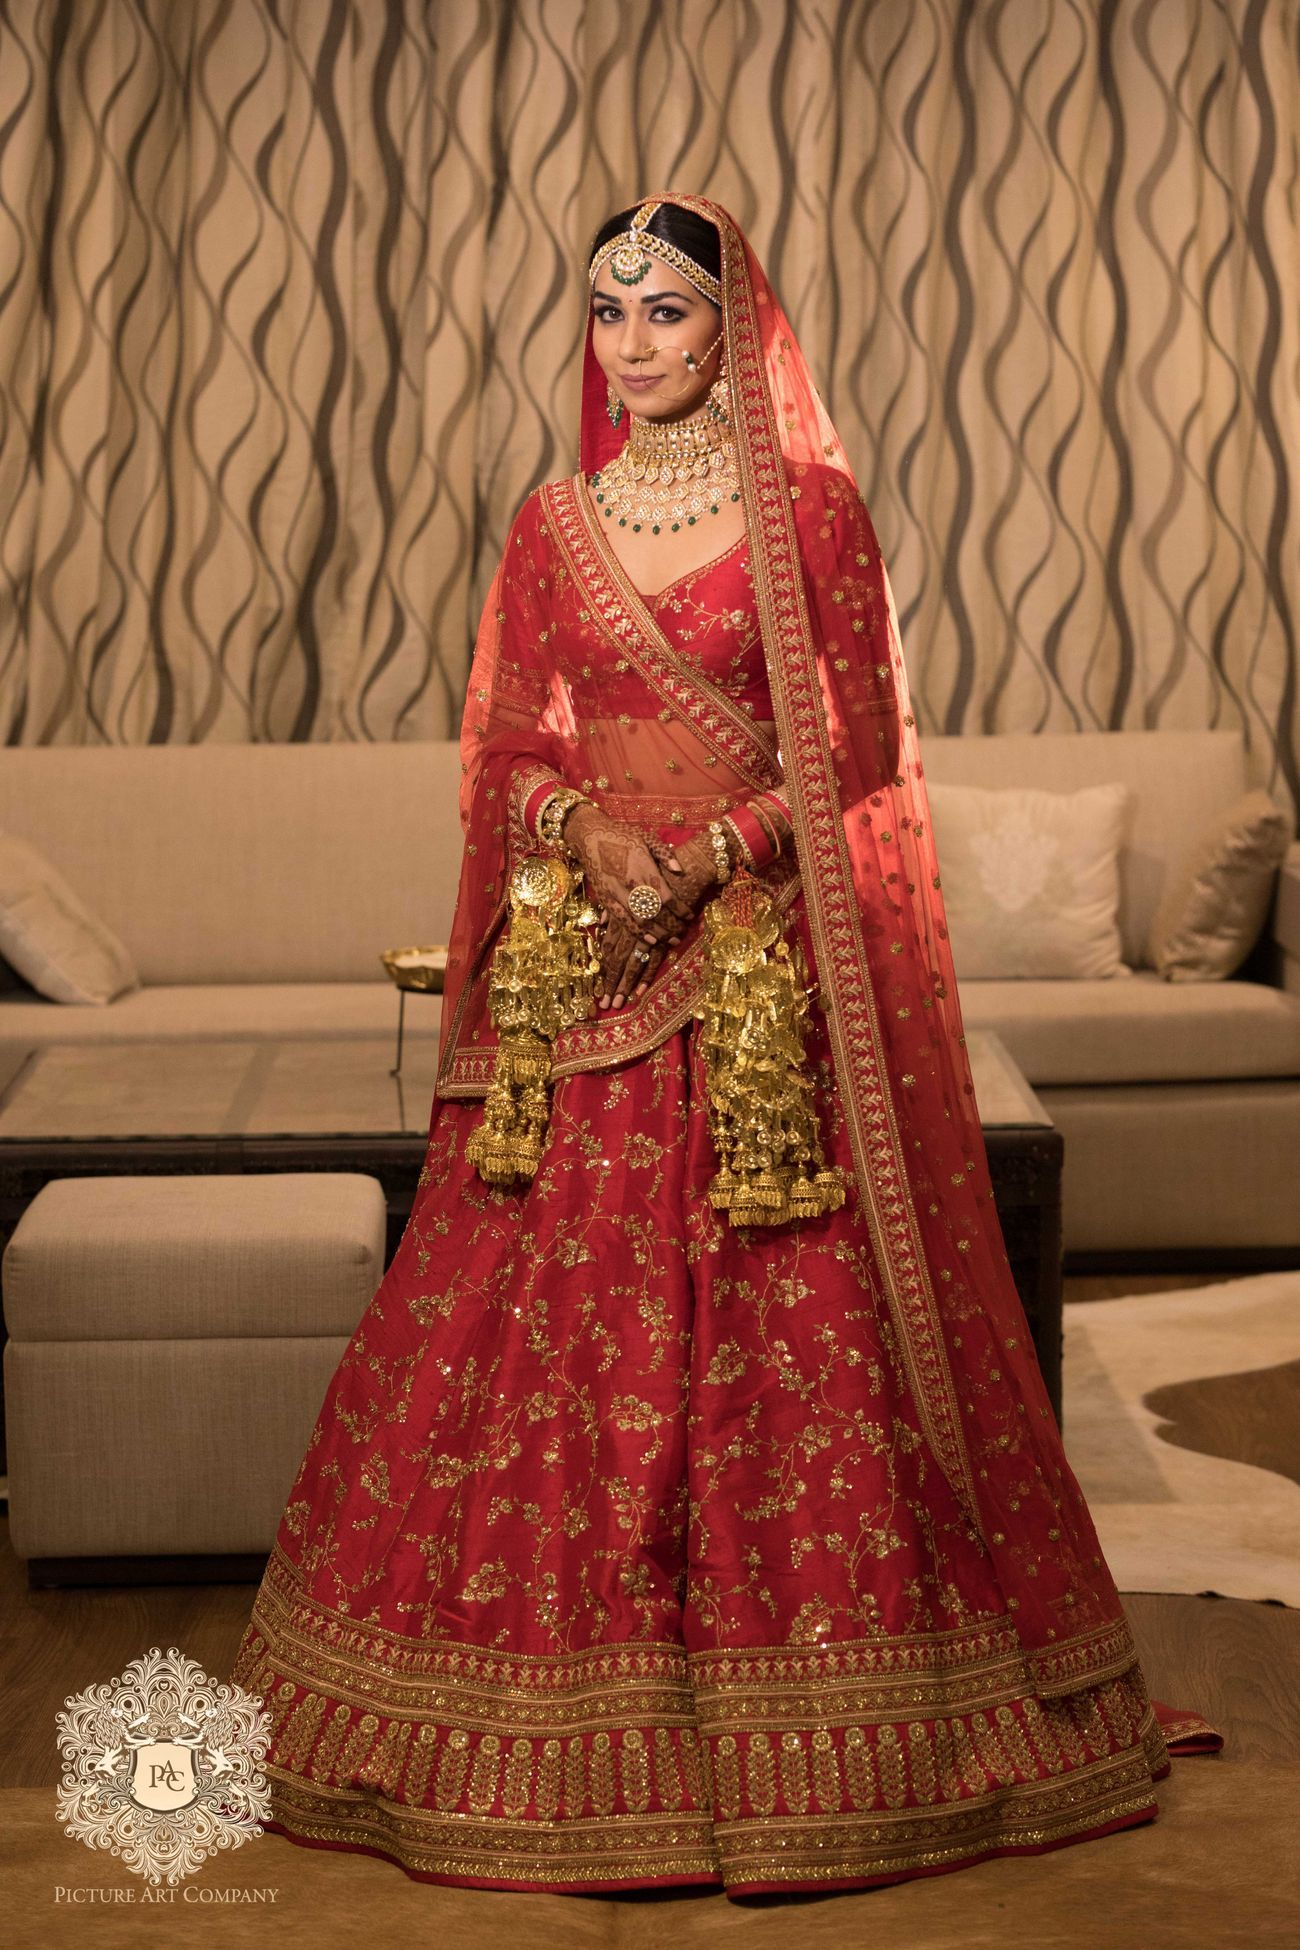 A Delhi Wedding With The Bride In A Shimmery Lehenga Bridal Lehenga Red Red Bridal Lehenga Sabyasachi Indian Bridal Dress [ 1950 x 1300 Pixel ]